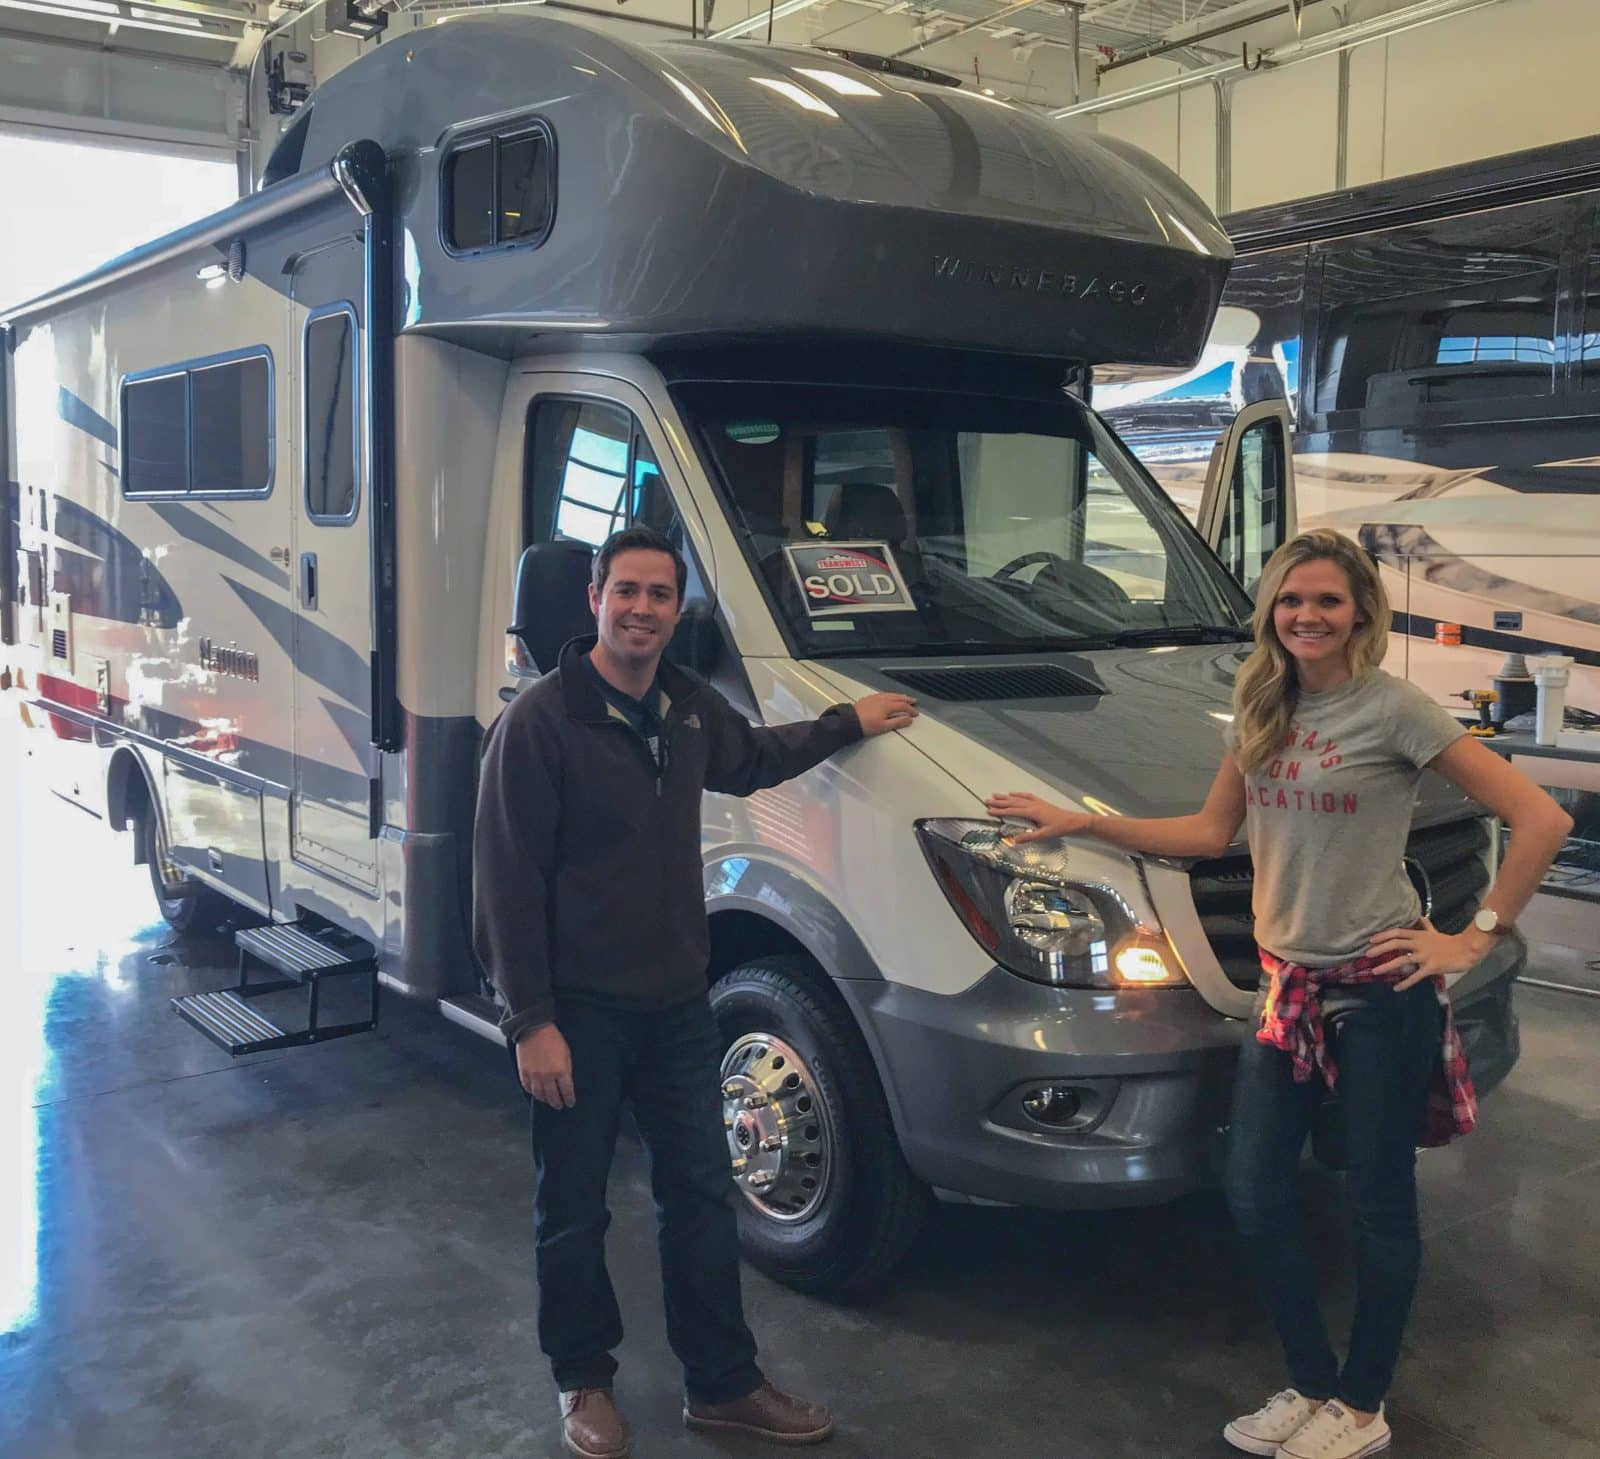 So You Bought An Rv Now What 5 Tips For New Rv Owners Camping World